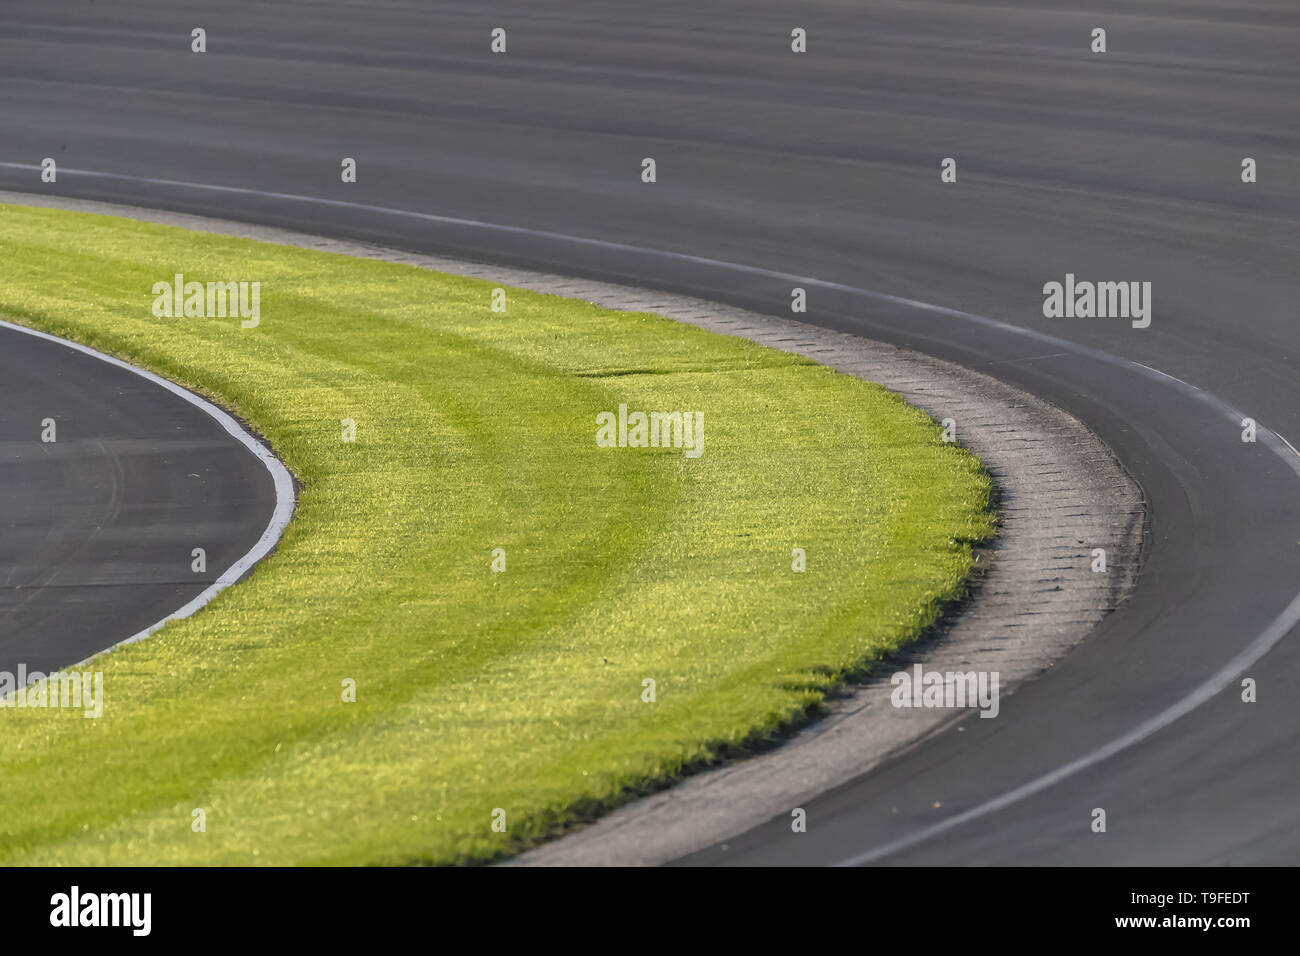 Indianapolis, Indiana, USA. 18th May, 2019. Indianapolis Motor Speedway plays host to the Indianapolis 500 in Indianapolis, Indiana. (Credit Image: © Walter G Arce Sr Asp Inc/ASP) Stock Photo